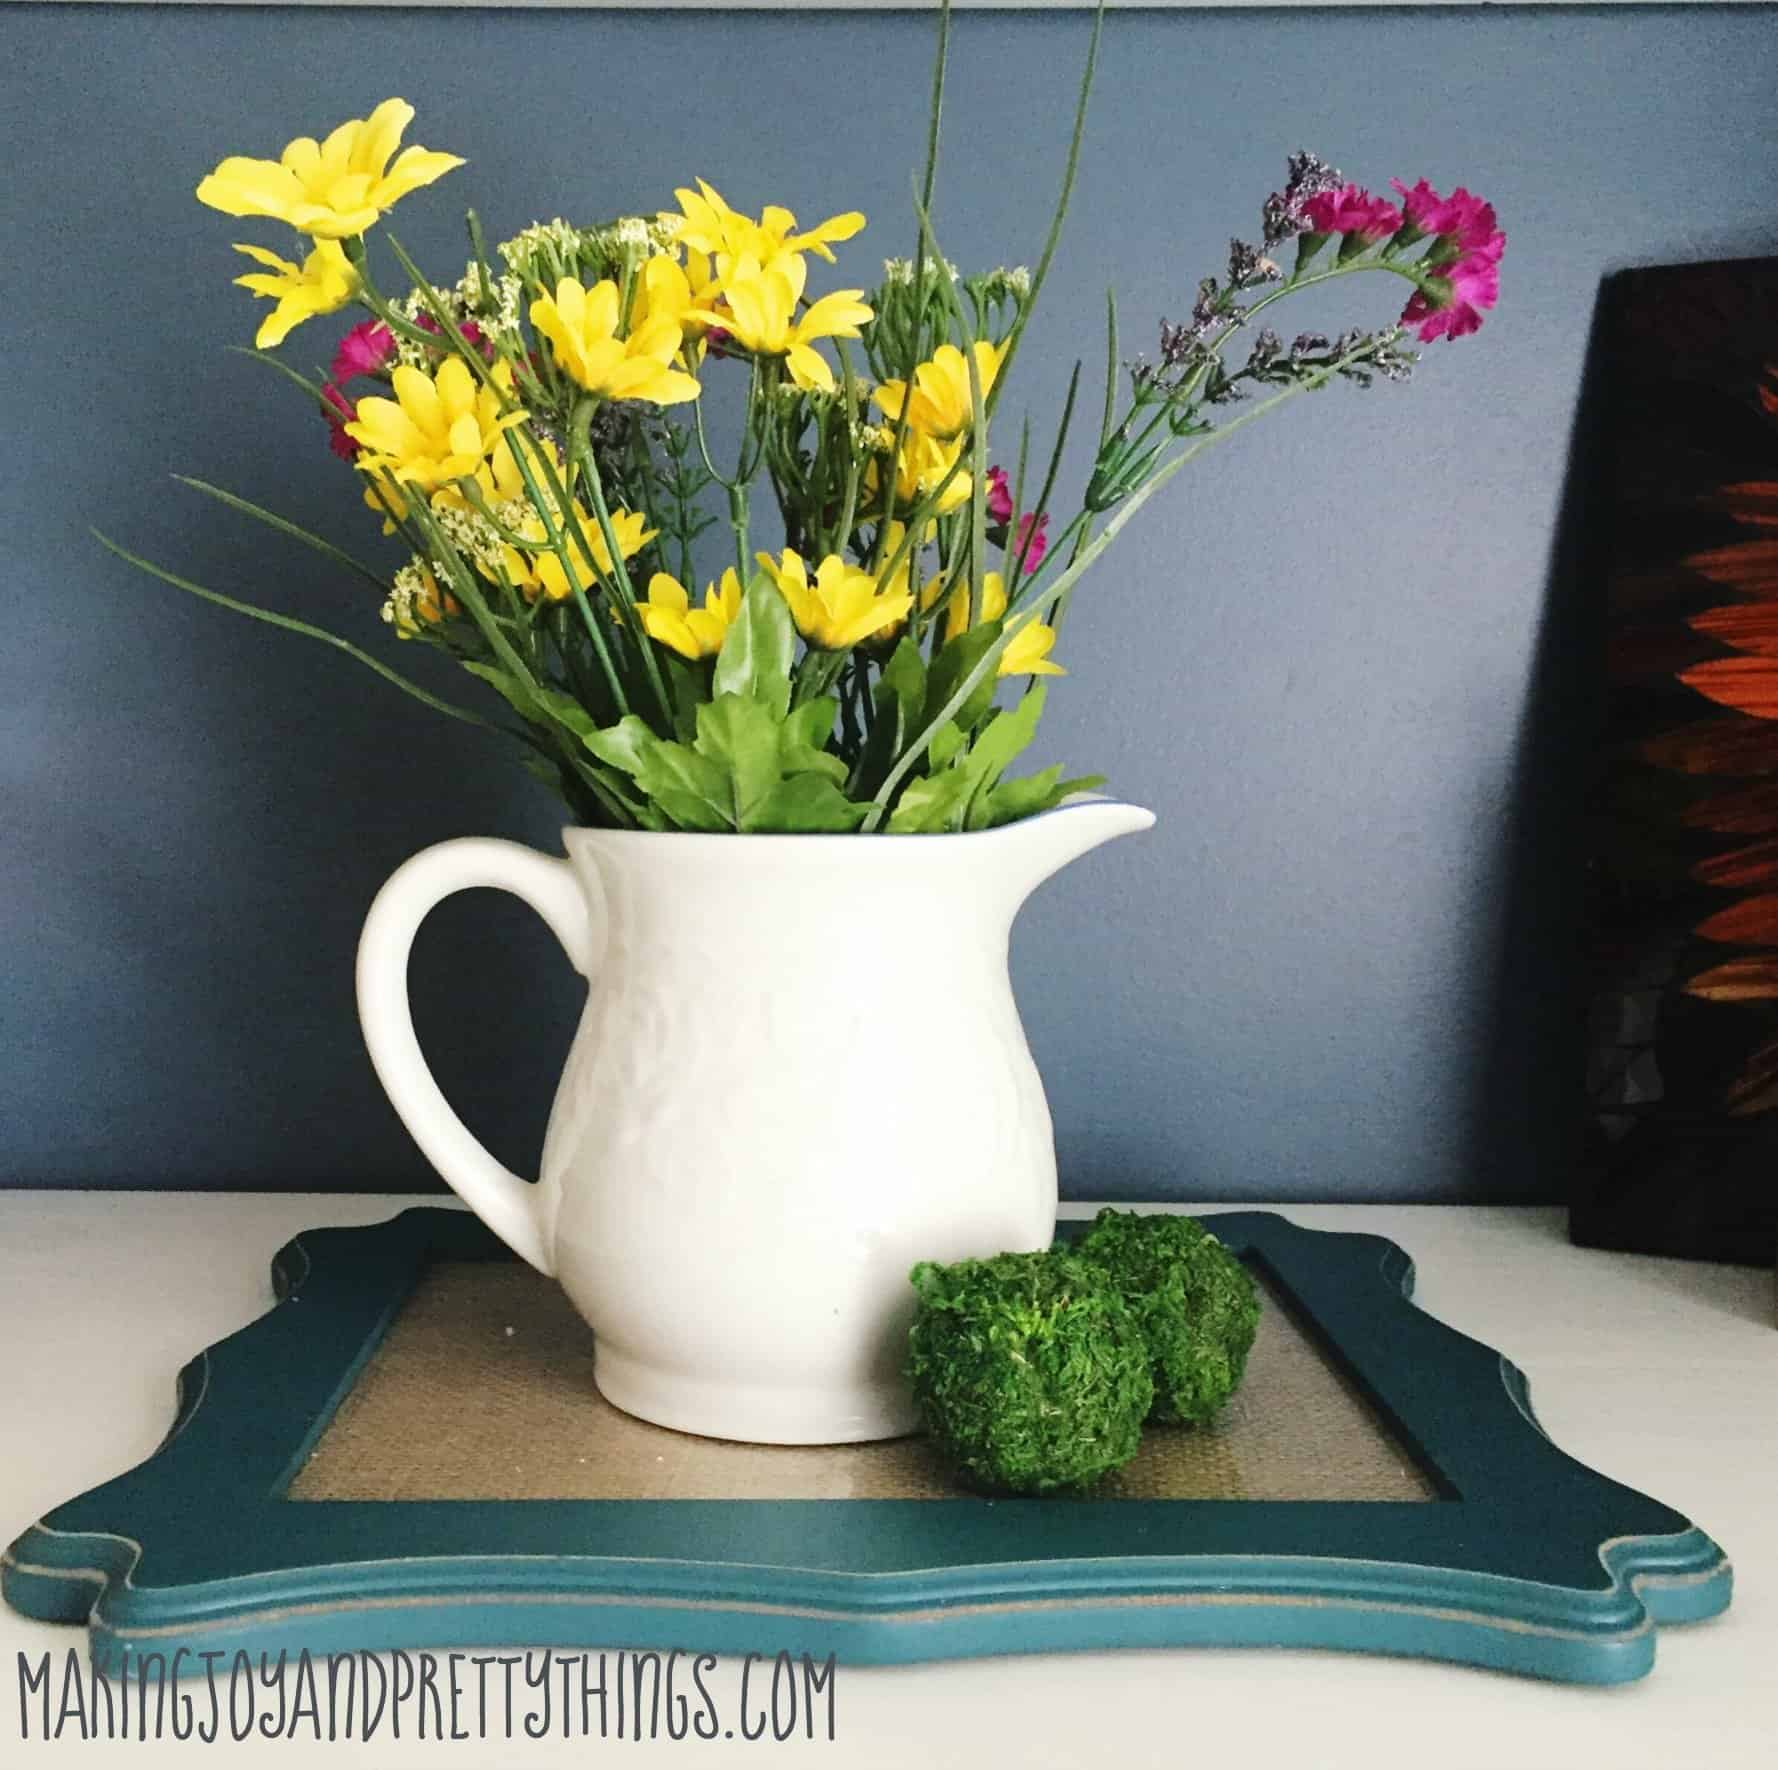 Make your own DIY centerpiece for FREE in 5 minutes!